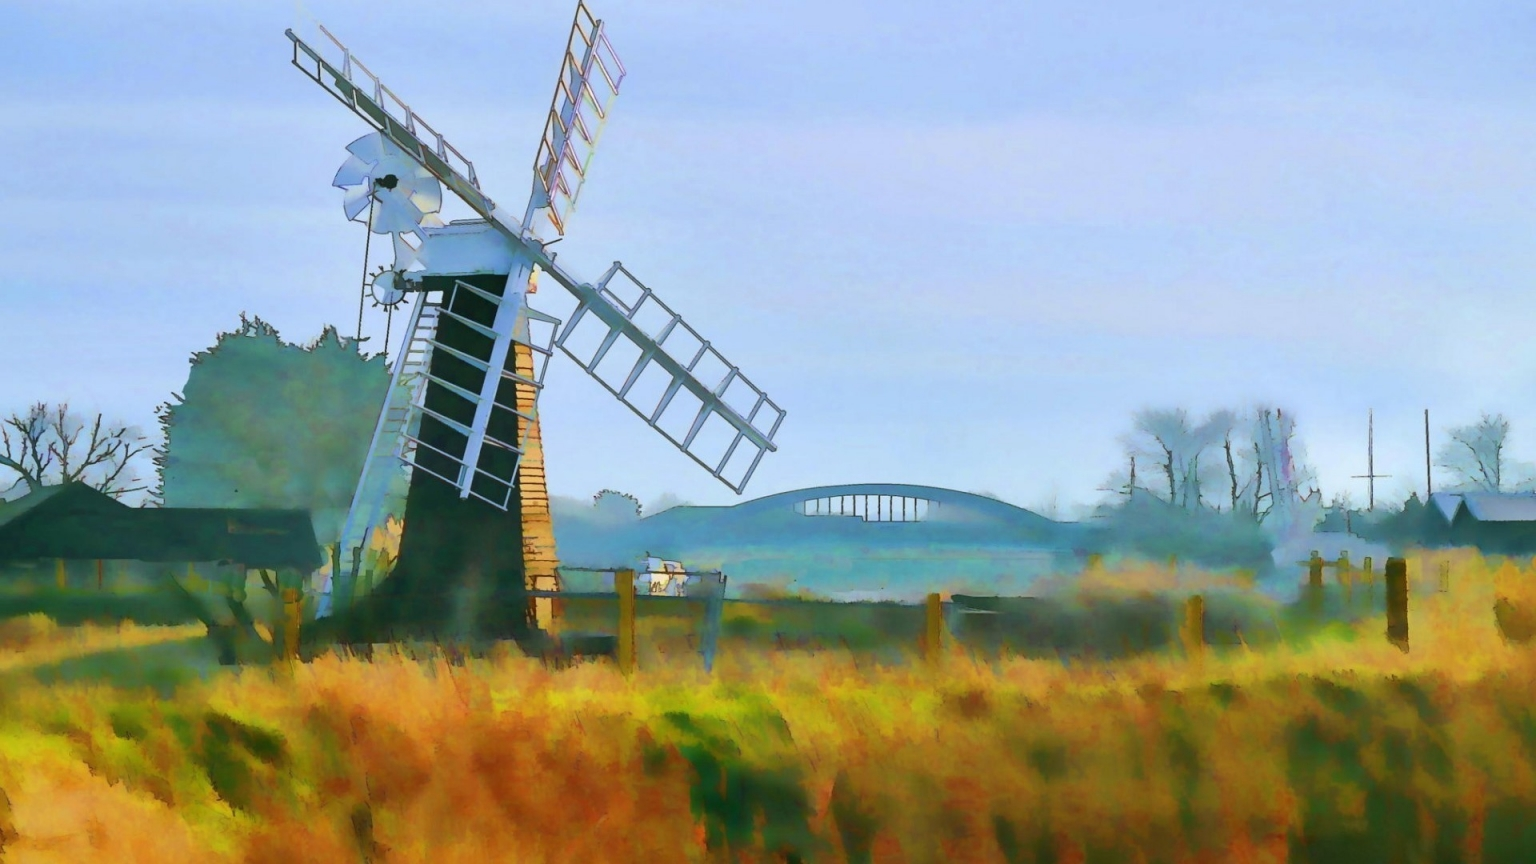 Windmill Painting for 1536 x 864 HDTV resolution